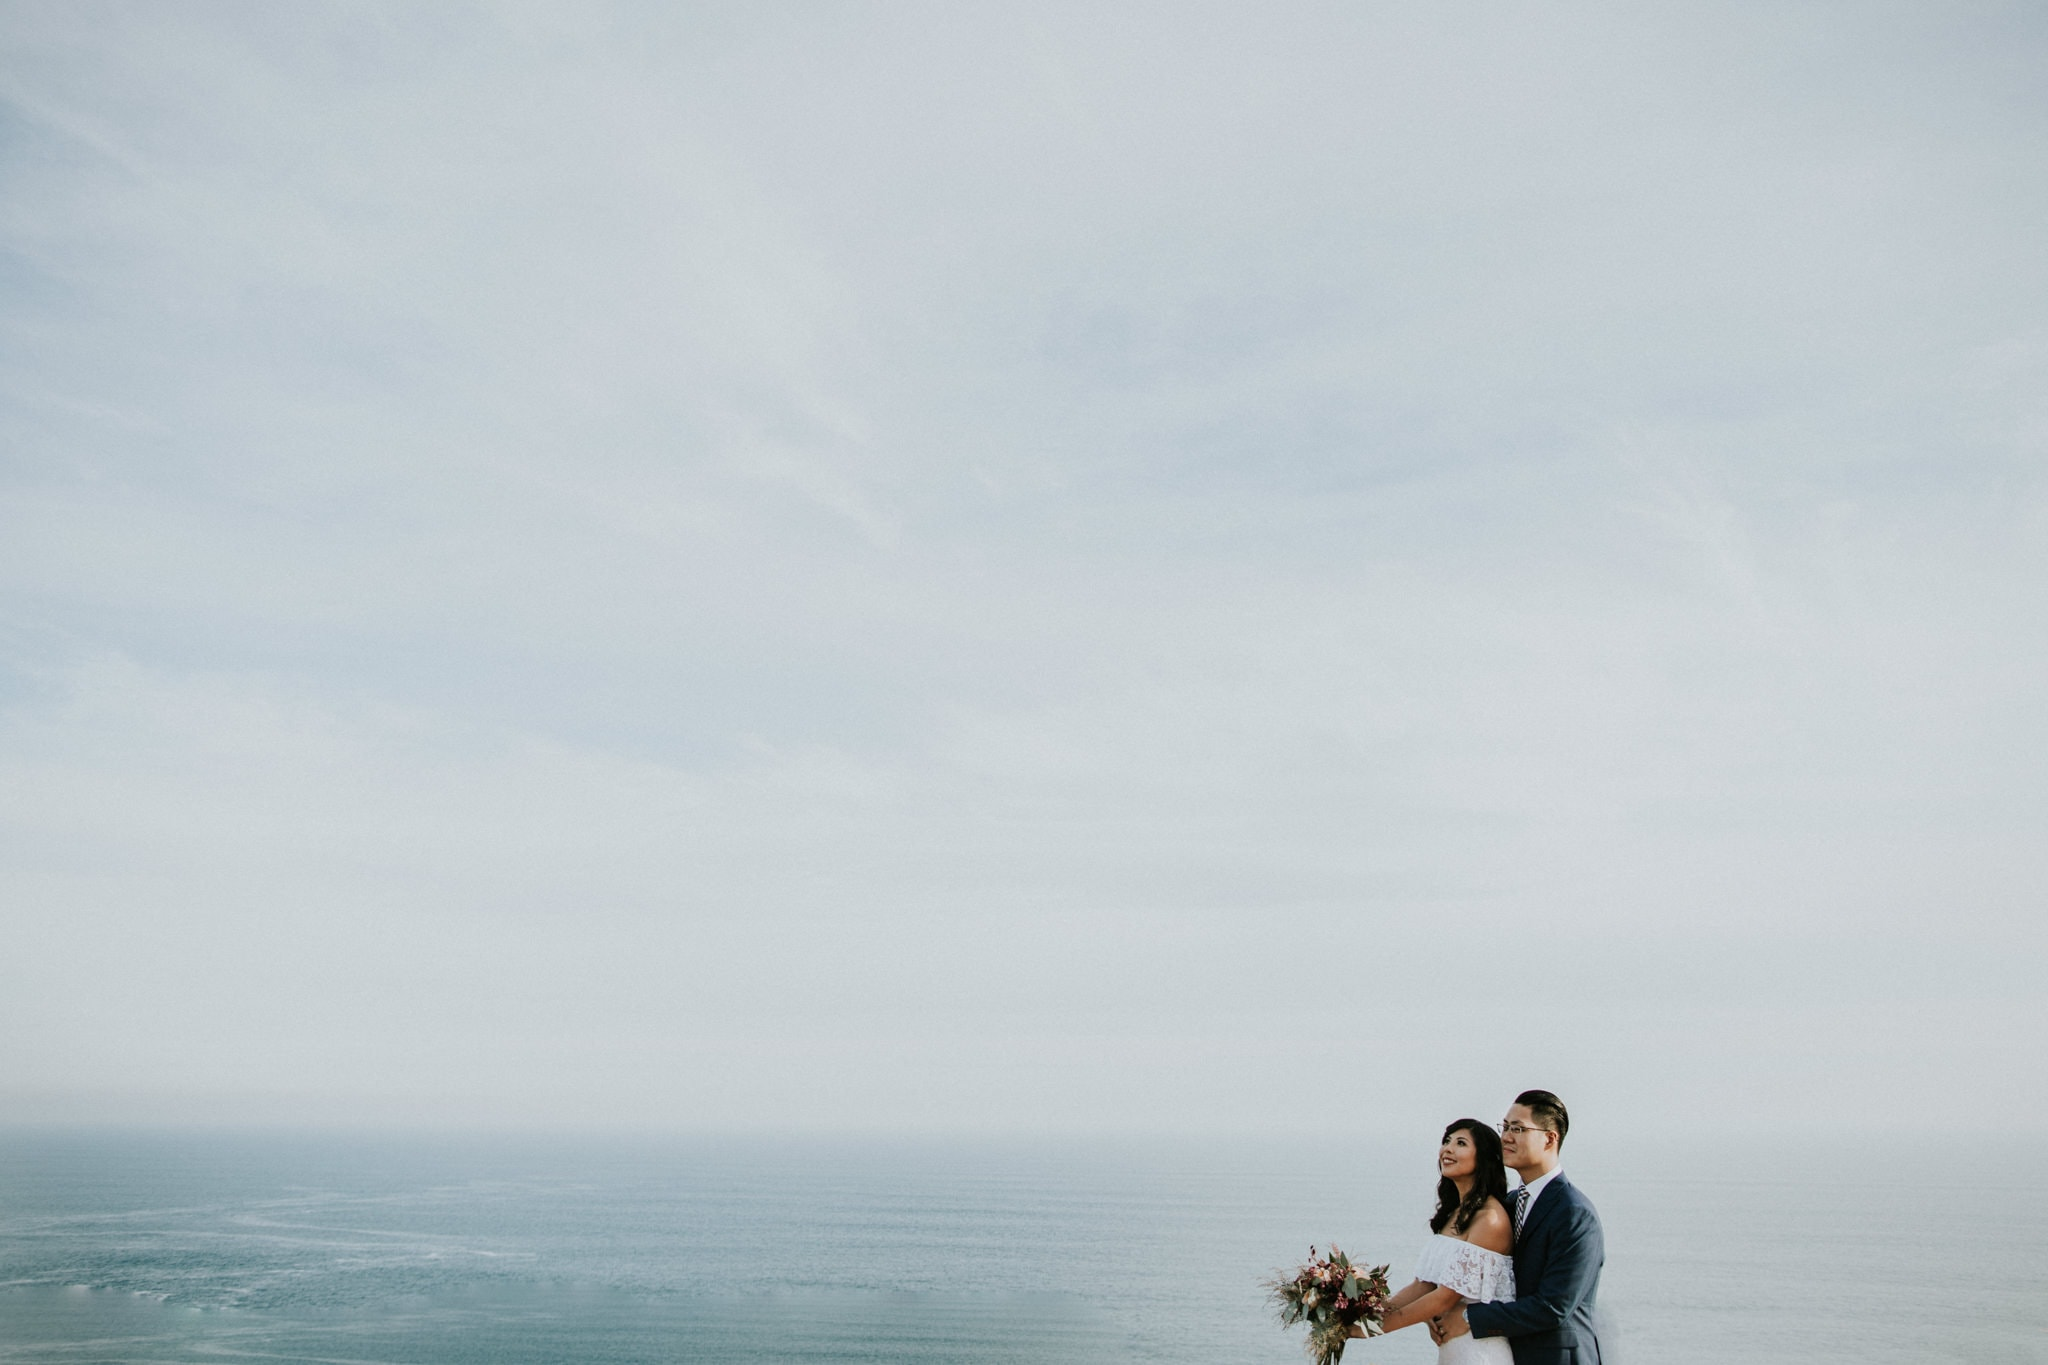 stunning wedding images with blue sky and clouds and sea - sorrento wedding photographer - luxury ocean weddings